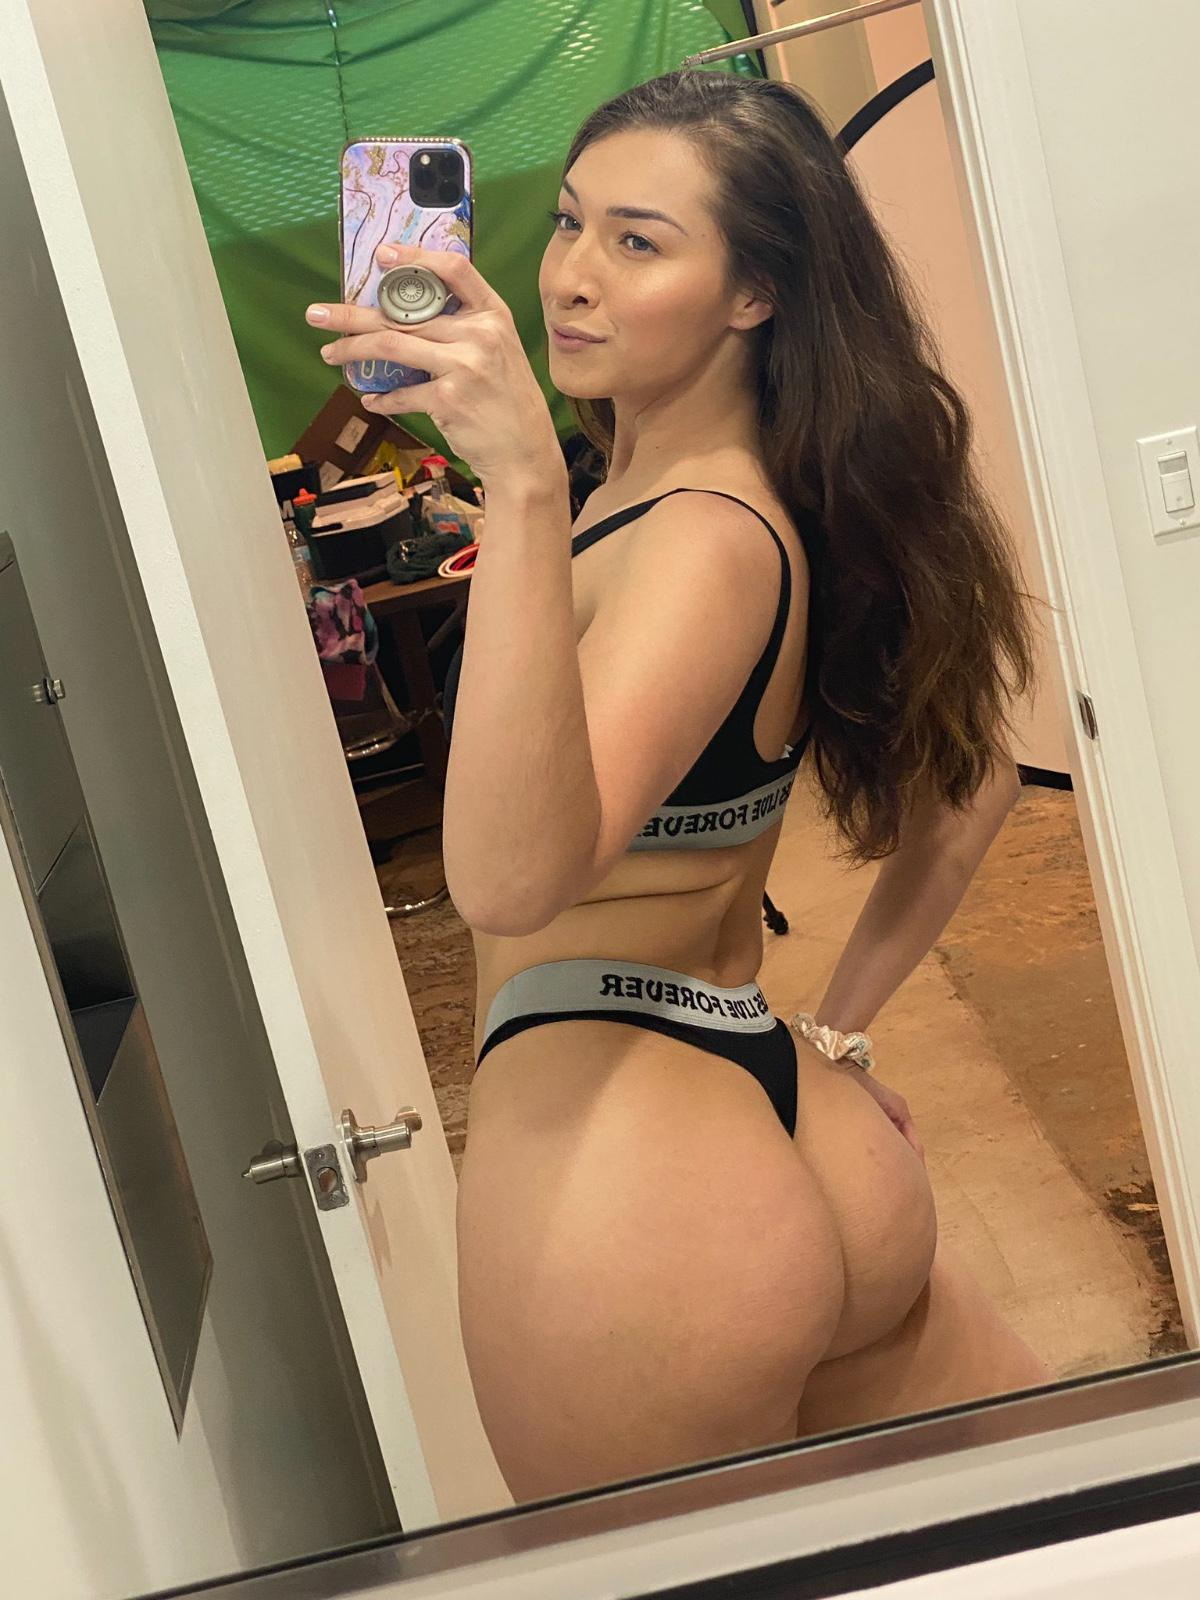 Down to fuck😋💦🍑